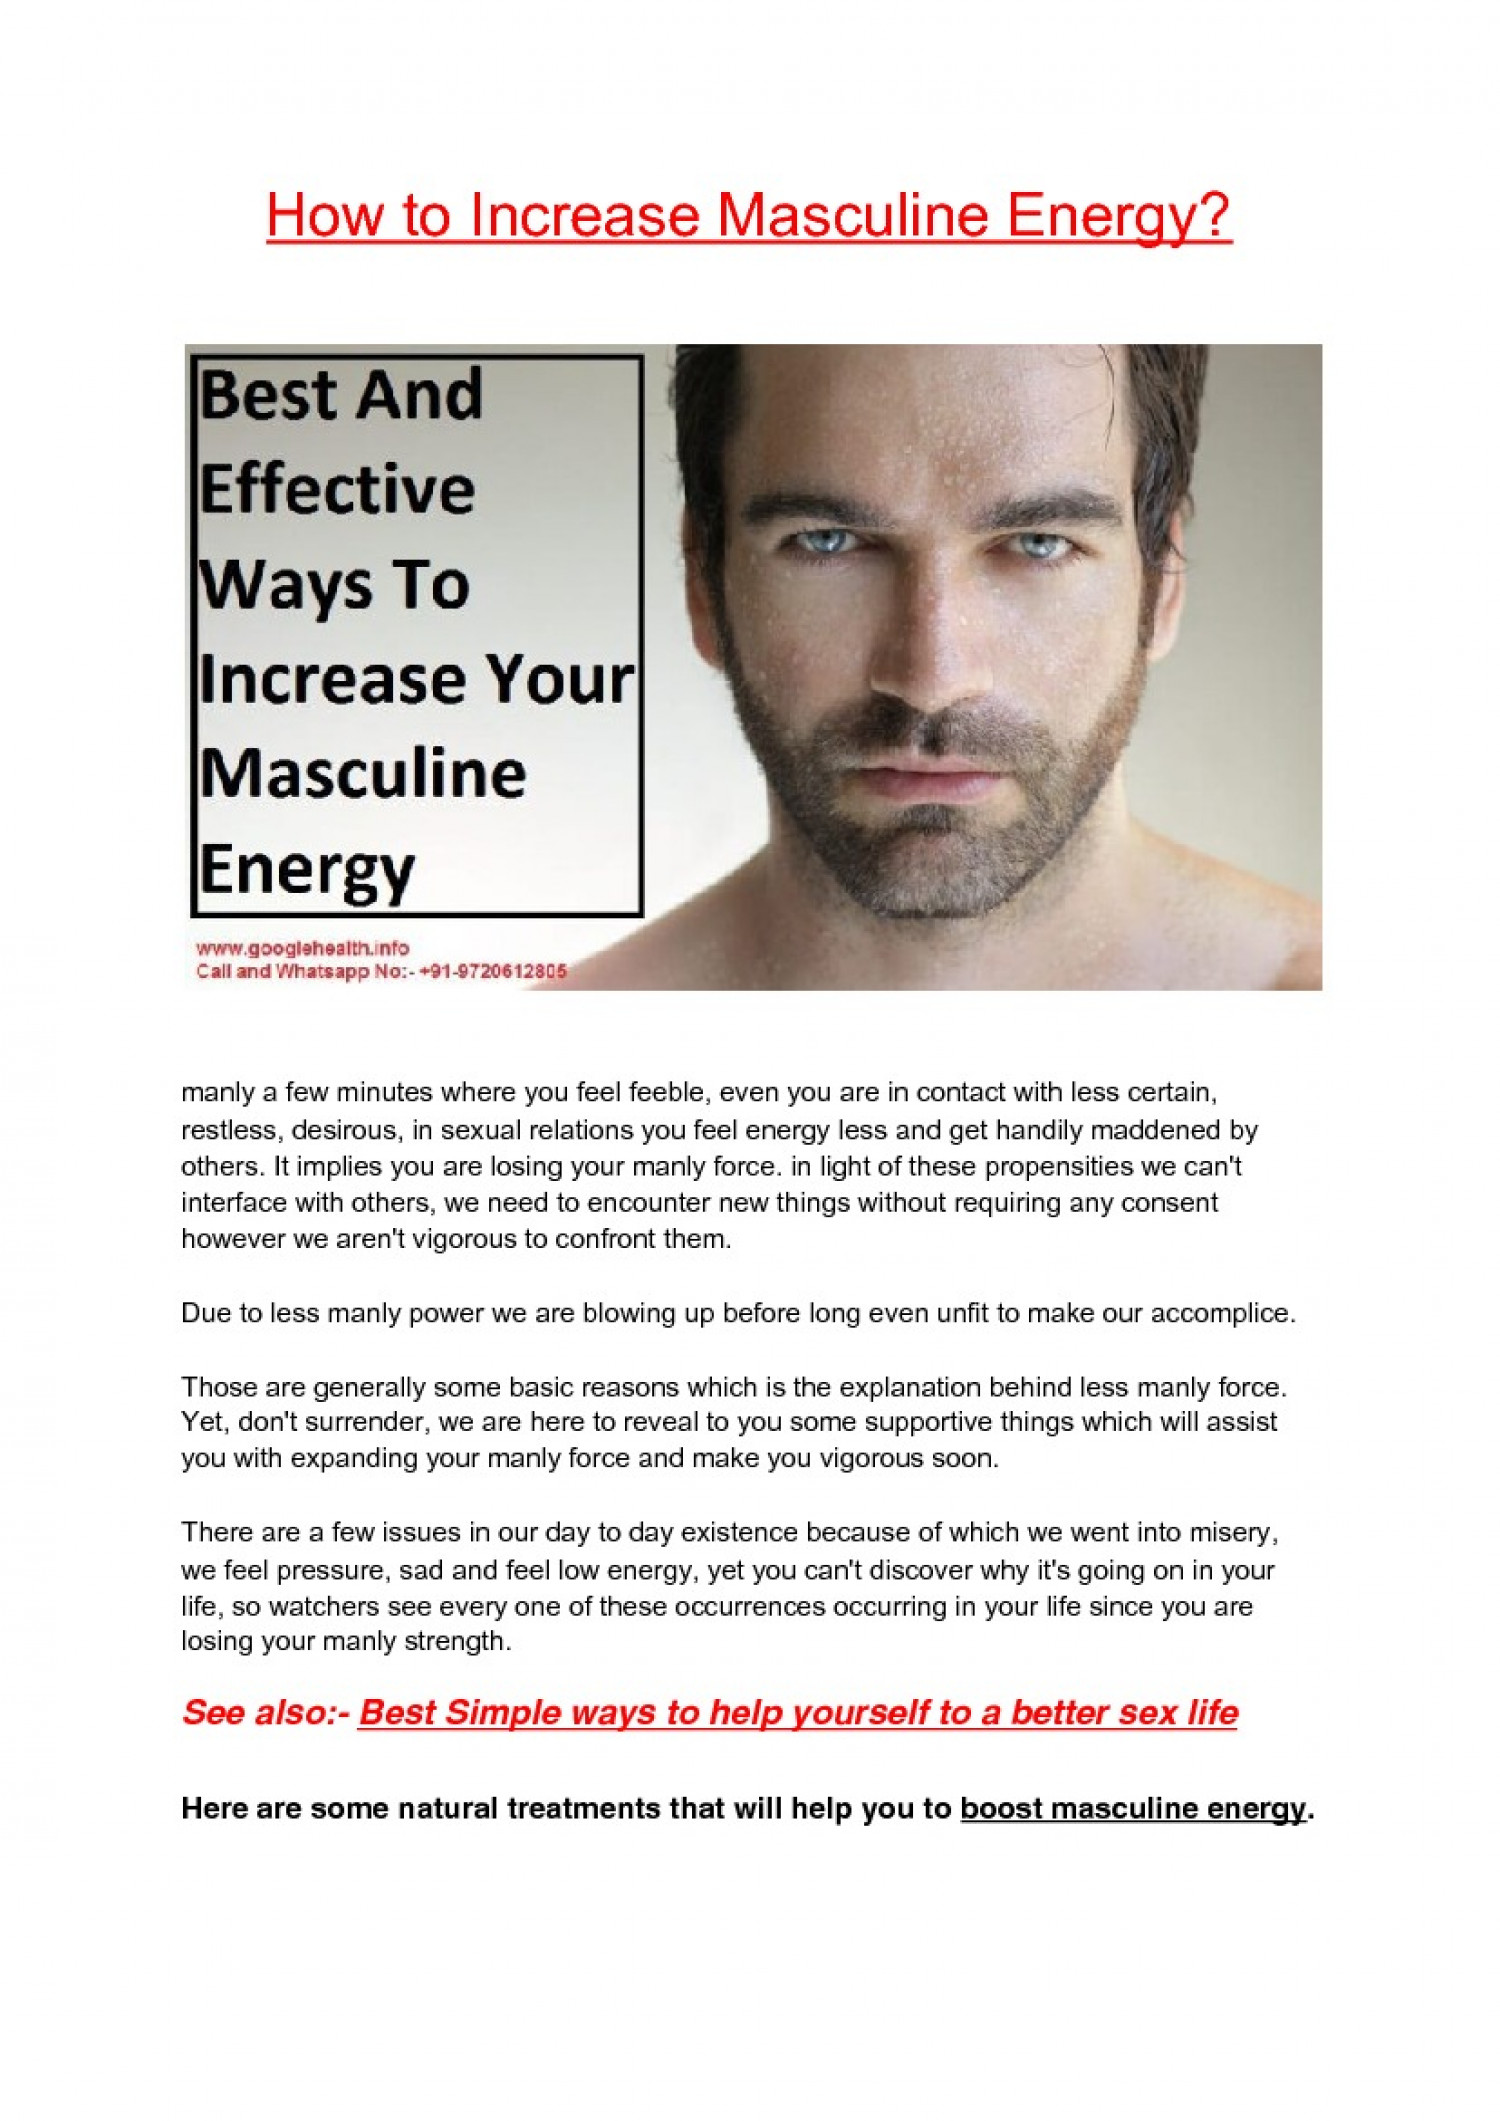 How to boost masculine energy  Infographic